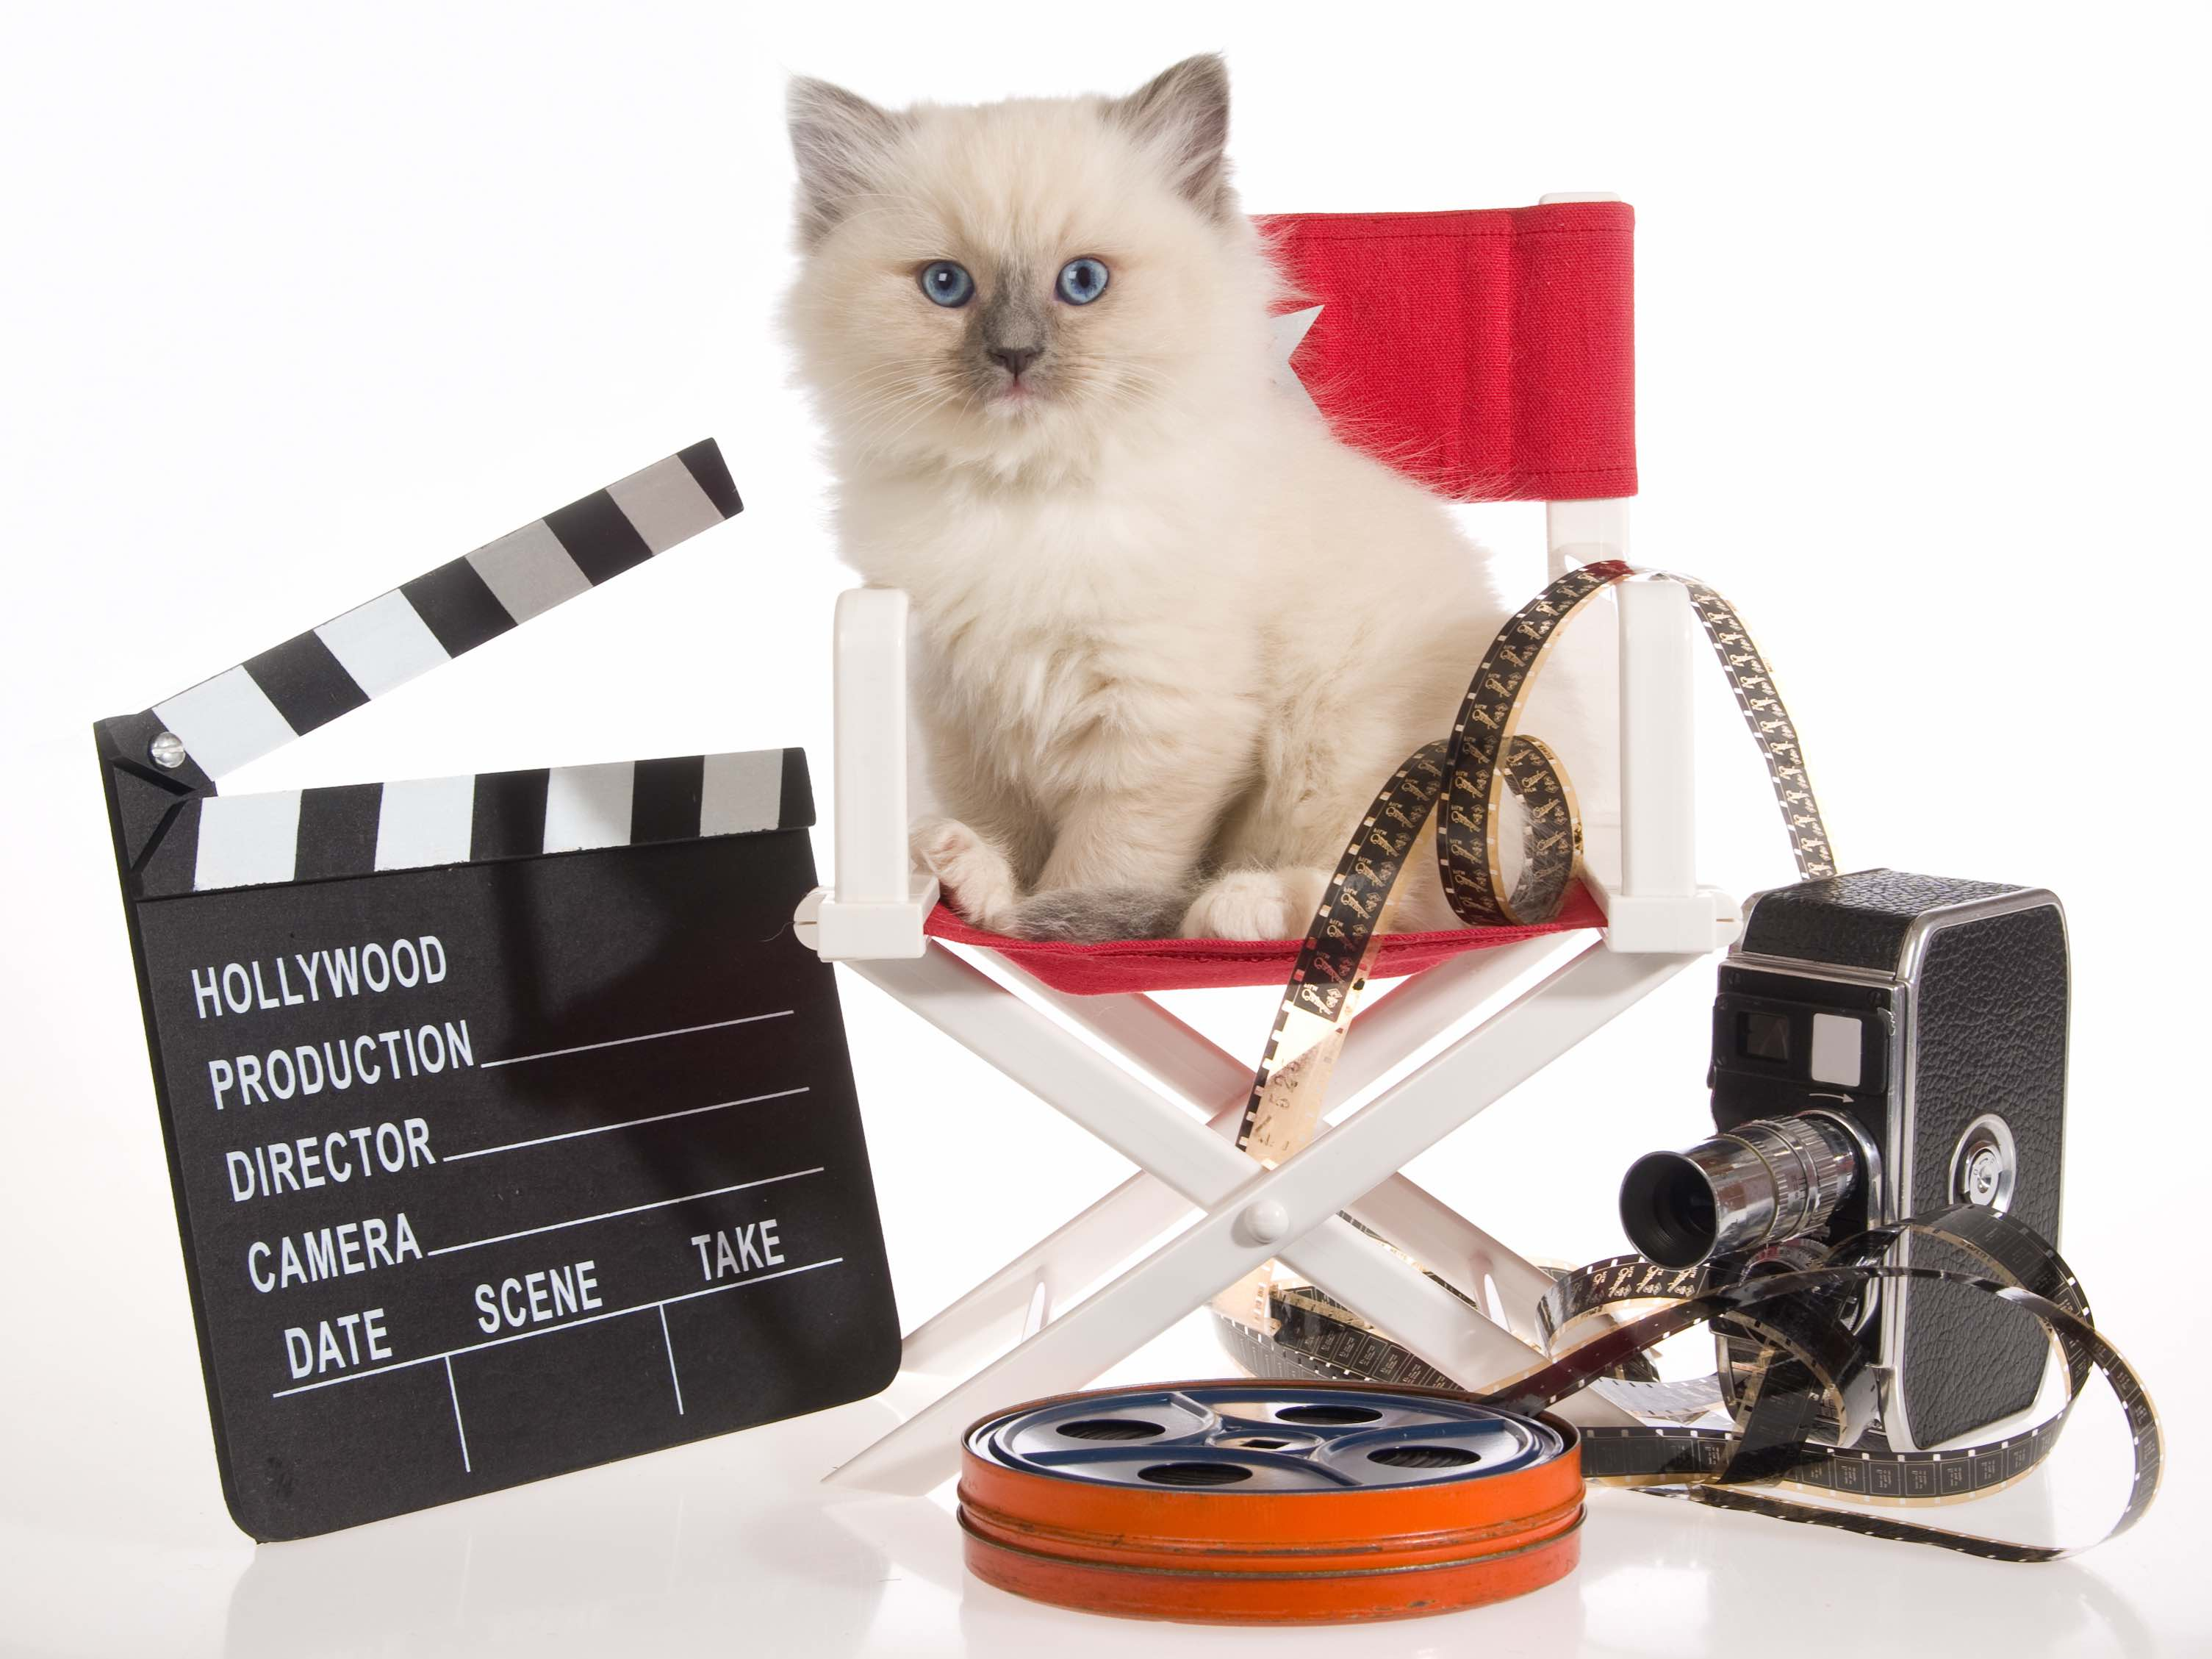 hollywood movie cat